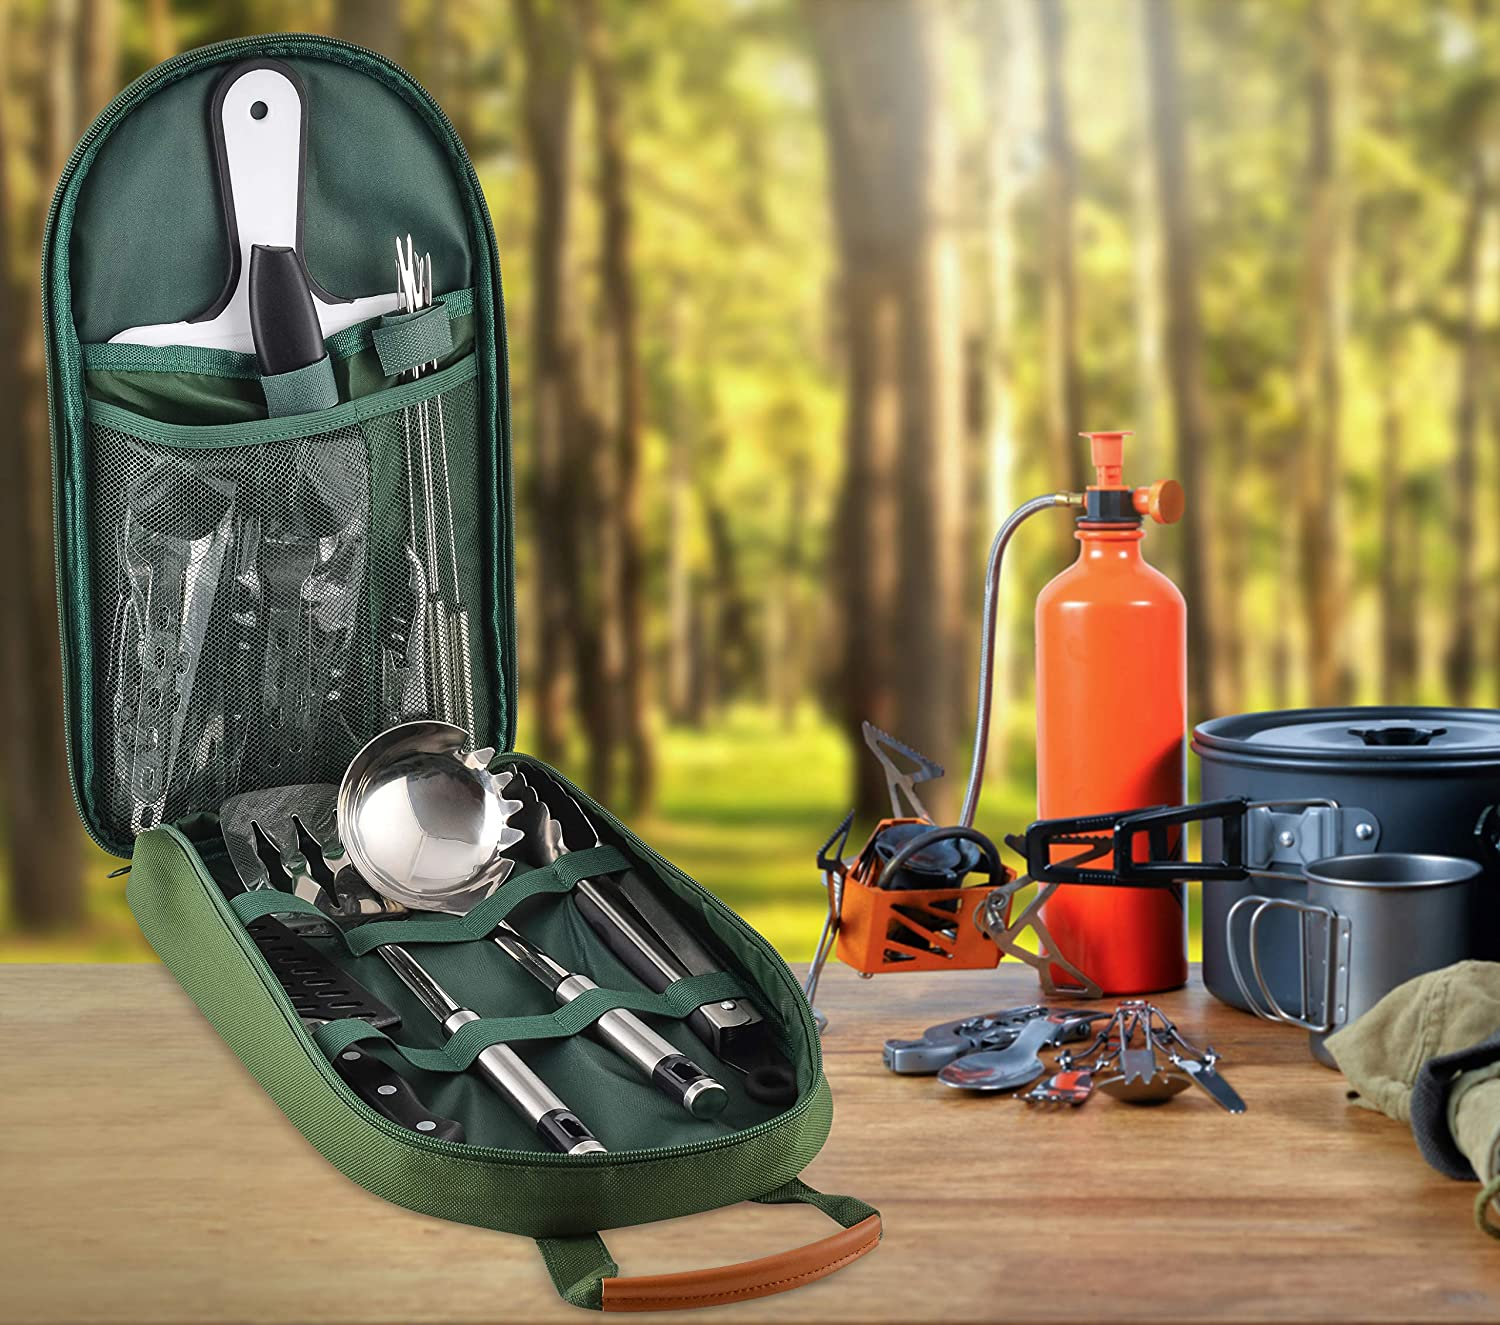 Onyx Outfitters Camping Kitchen Utensil Set and Outdoor Living Travel BBQs 27+ Piece Stainless Steel Outdoor Camping and Grilling Utensil Kit for Hiking RVs Picnics